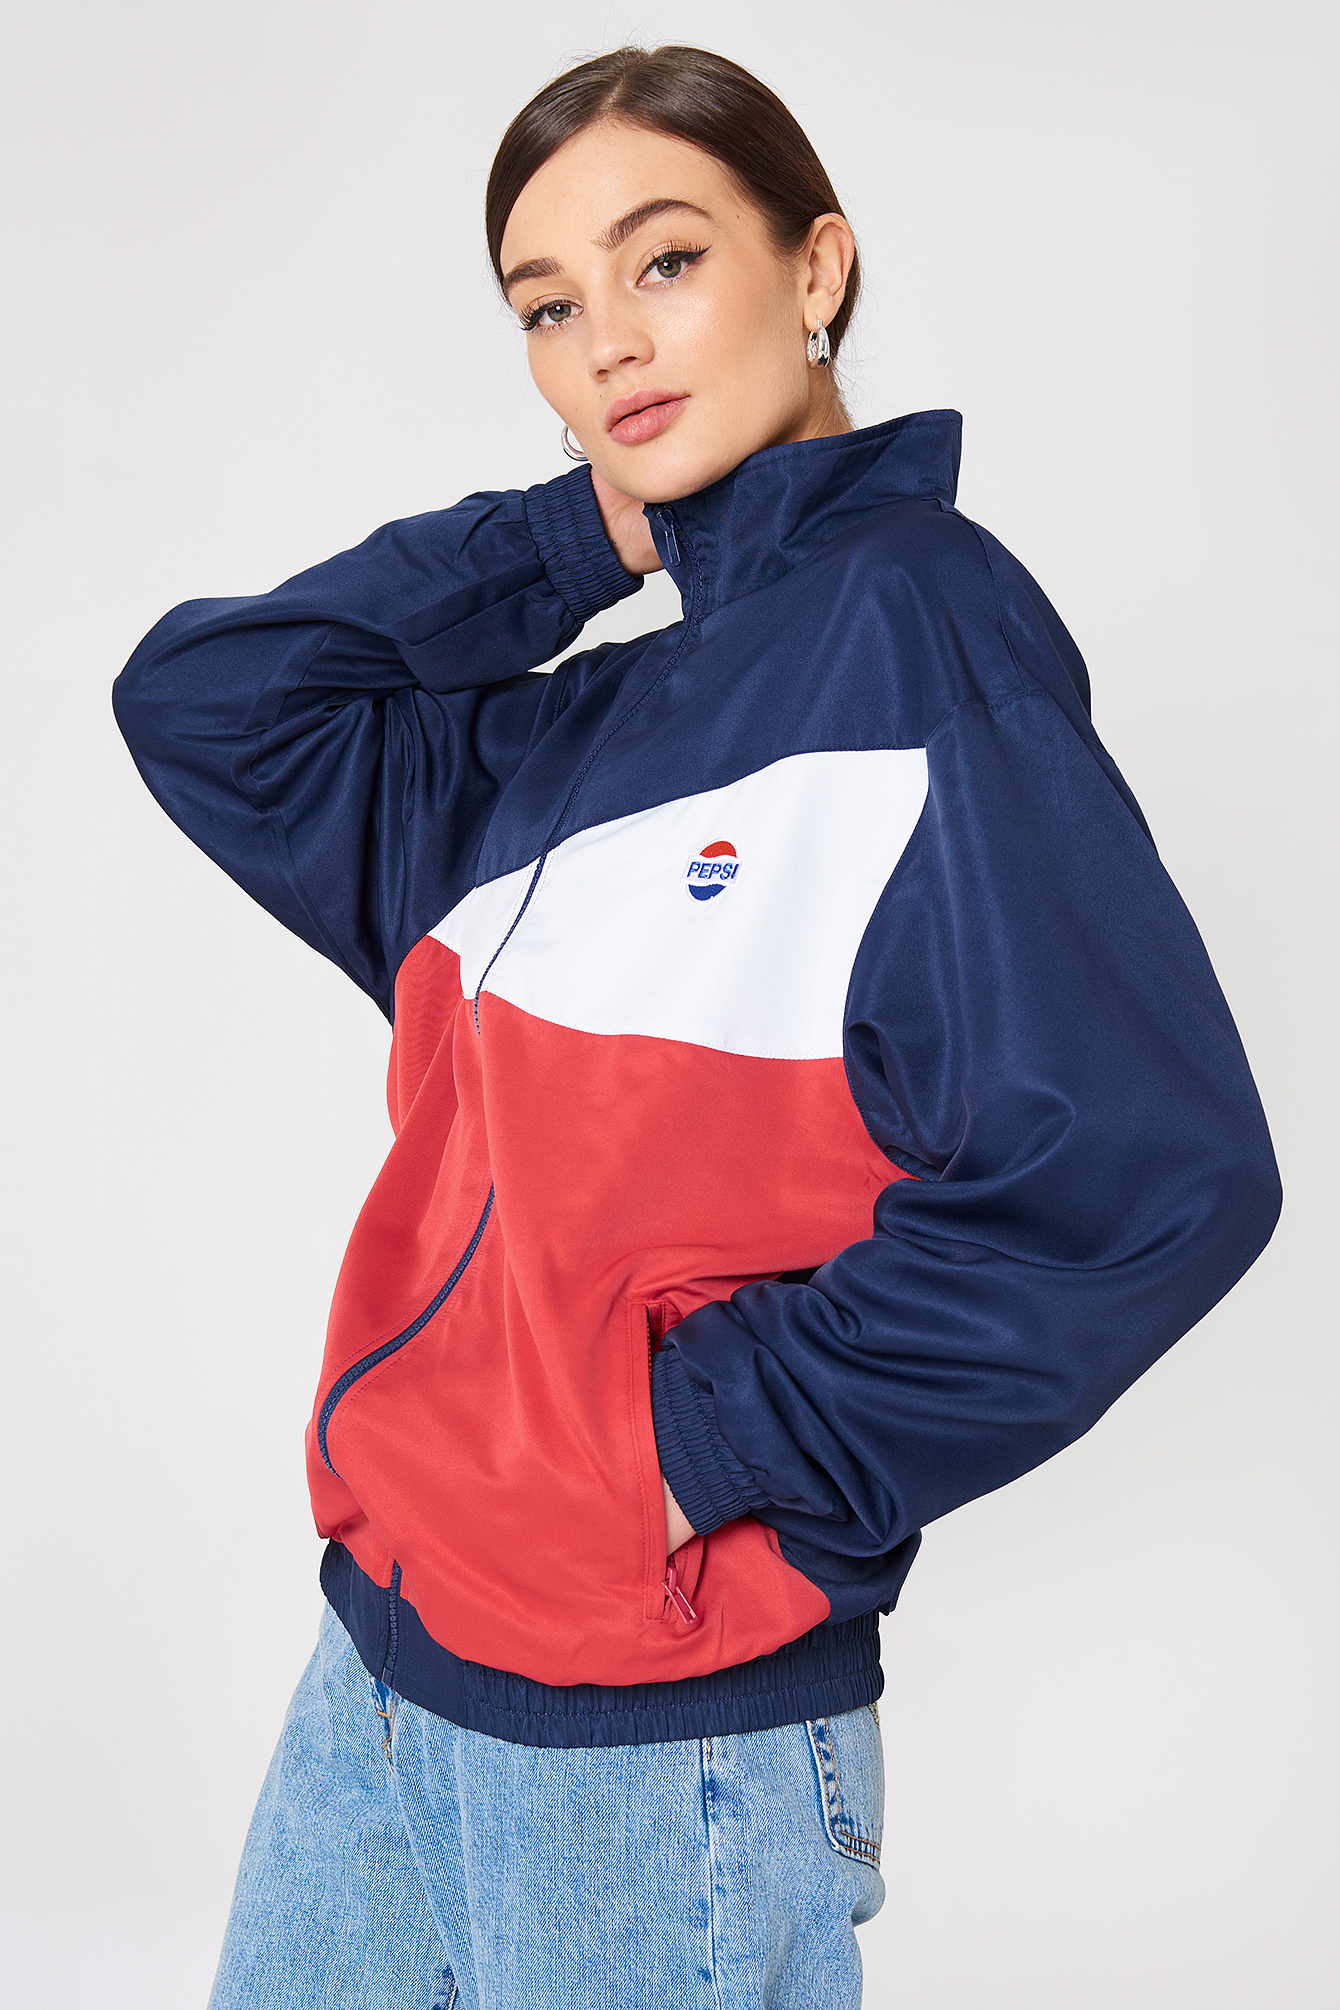 Sweet Pepsi Tennis Jacket NA-KD.COM